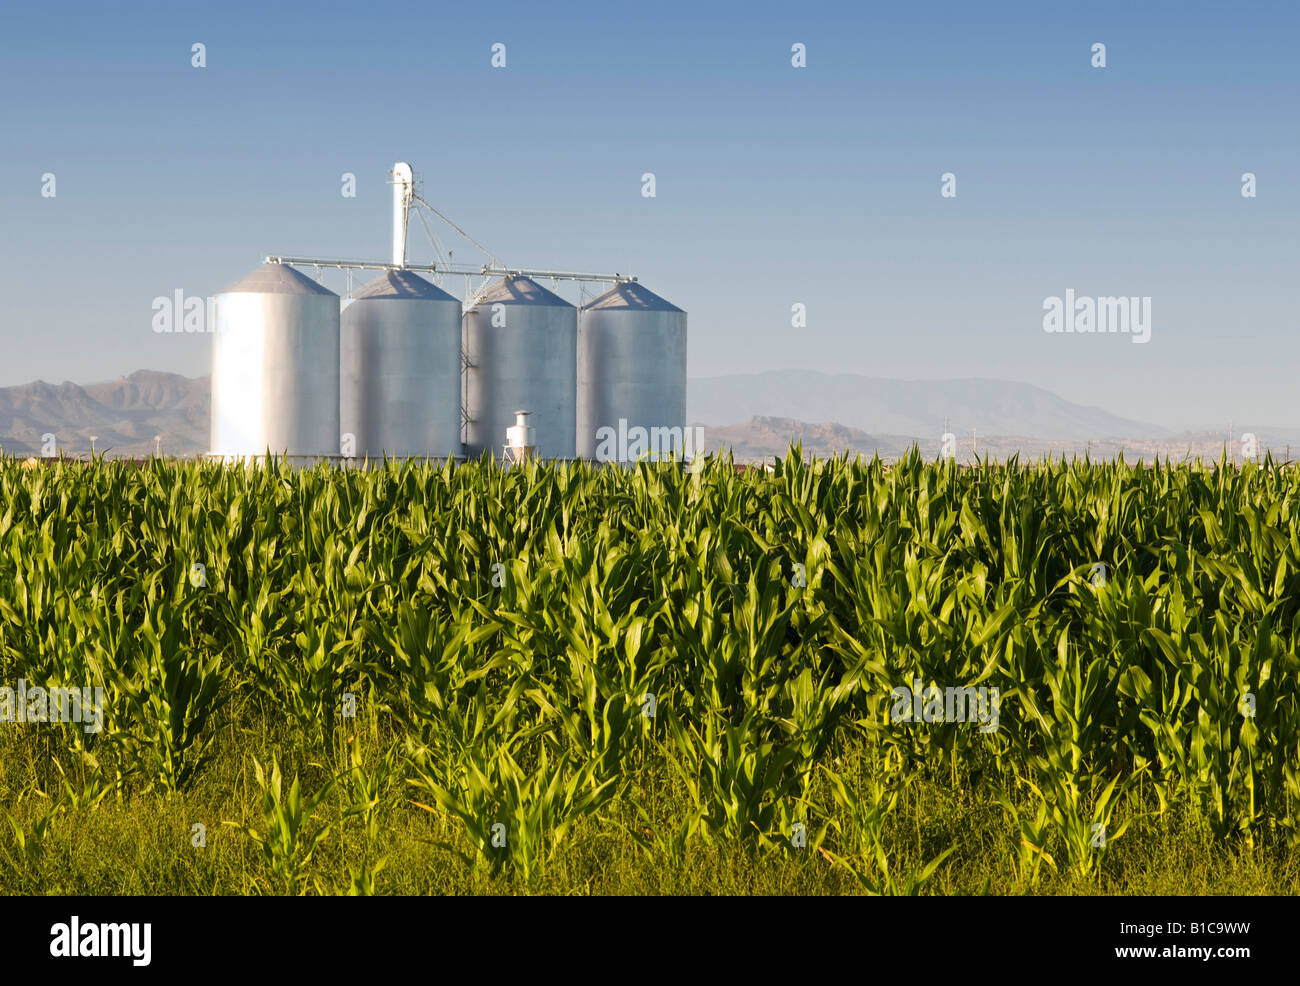 Corn crop with farm silos and mountains in background - Stock Image